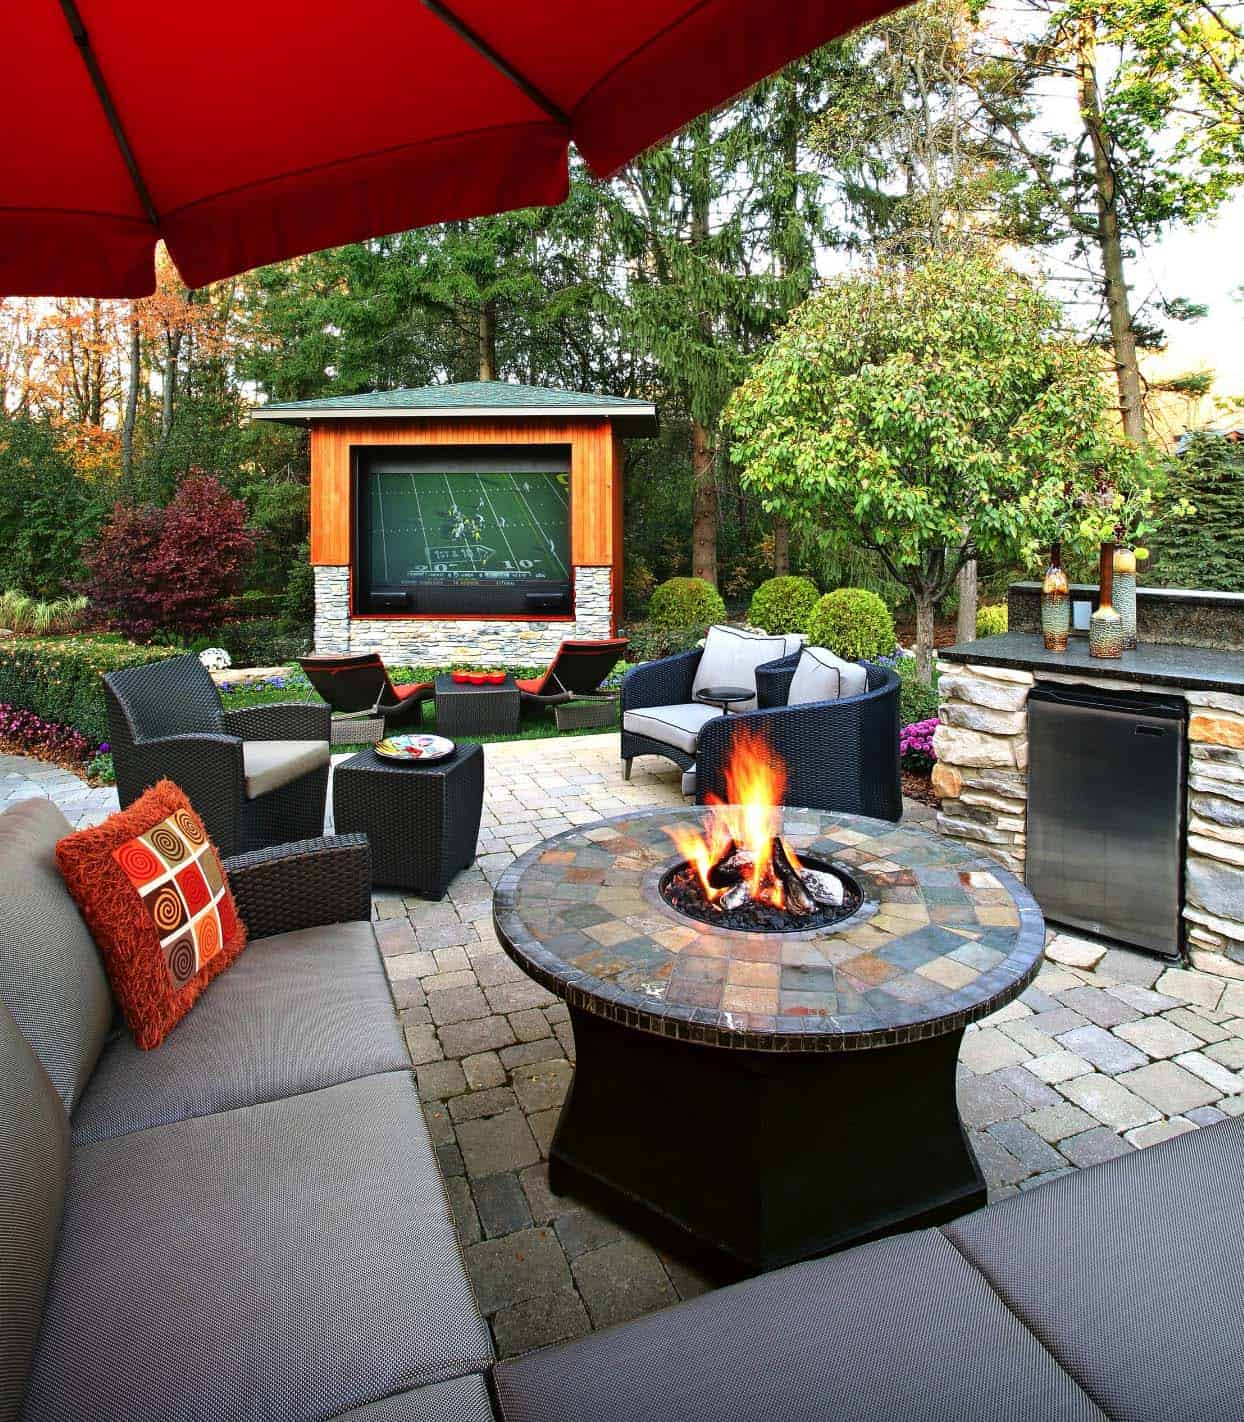 Fabulous Outdoor Patio Ideas 24 1 Kindesign